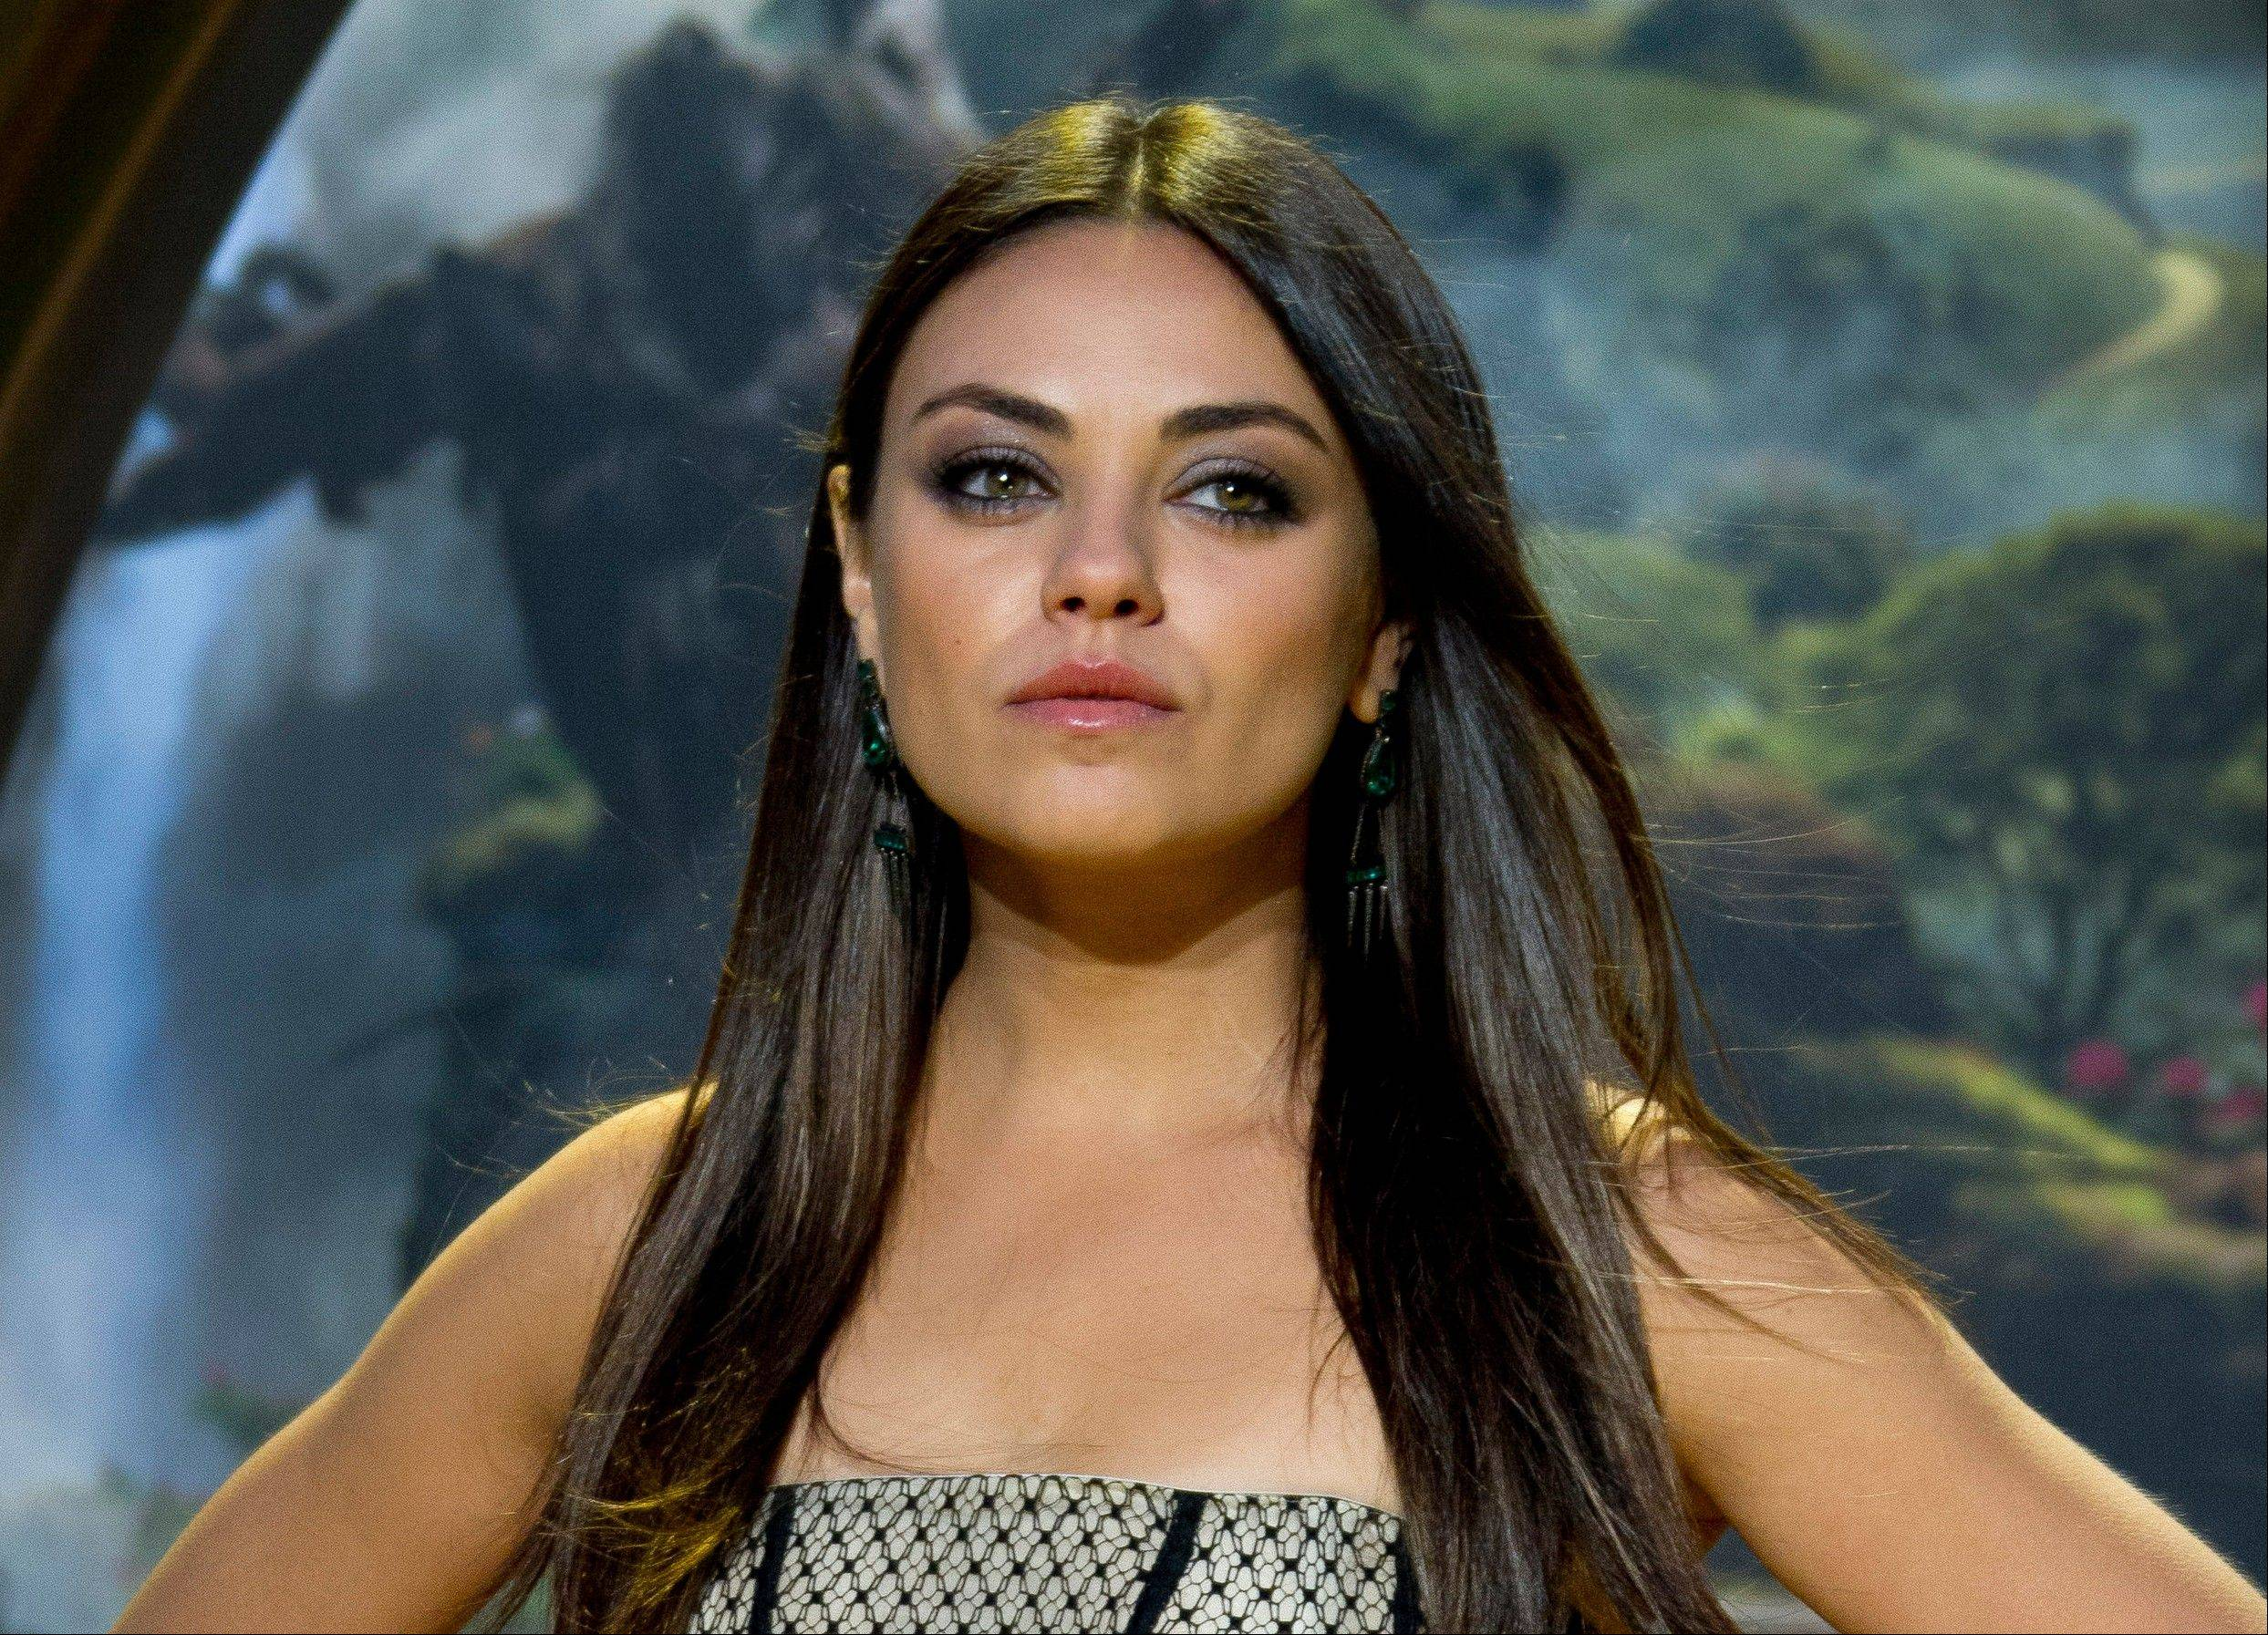 "Actress Mila Kunis' stardom and general idolization went up a notch last week, and you would think this is because she stars in the biggest movie of the year so far. But ""Oz: The Great And Powerful,"" which debuted with $79.1 million at the box office, had hardly anything to do with the sudden rush of adulation that engulfed Kunis. Instead, it was a seven-minute viral video that's been watched more than 10 million times and blogged about the world over."